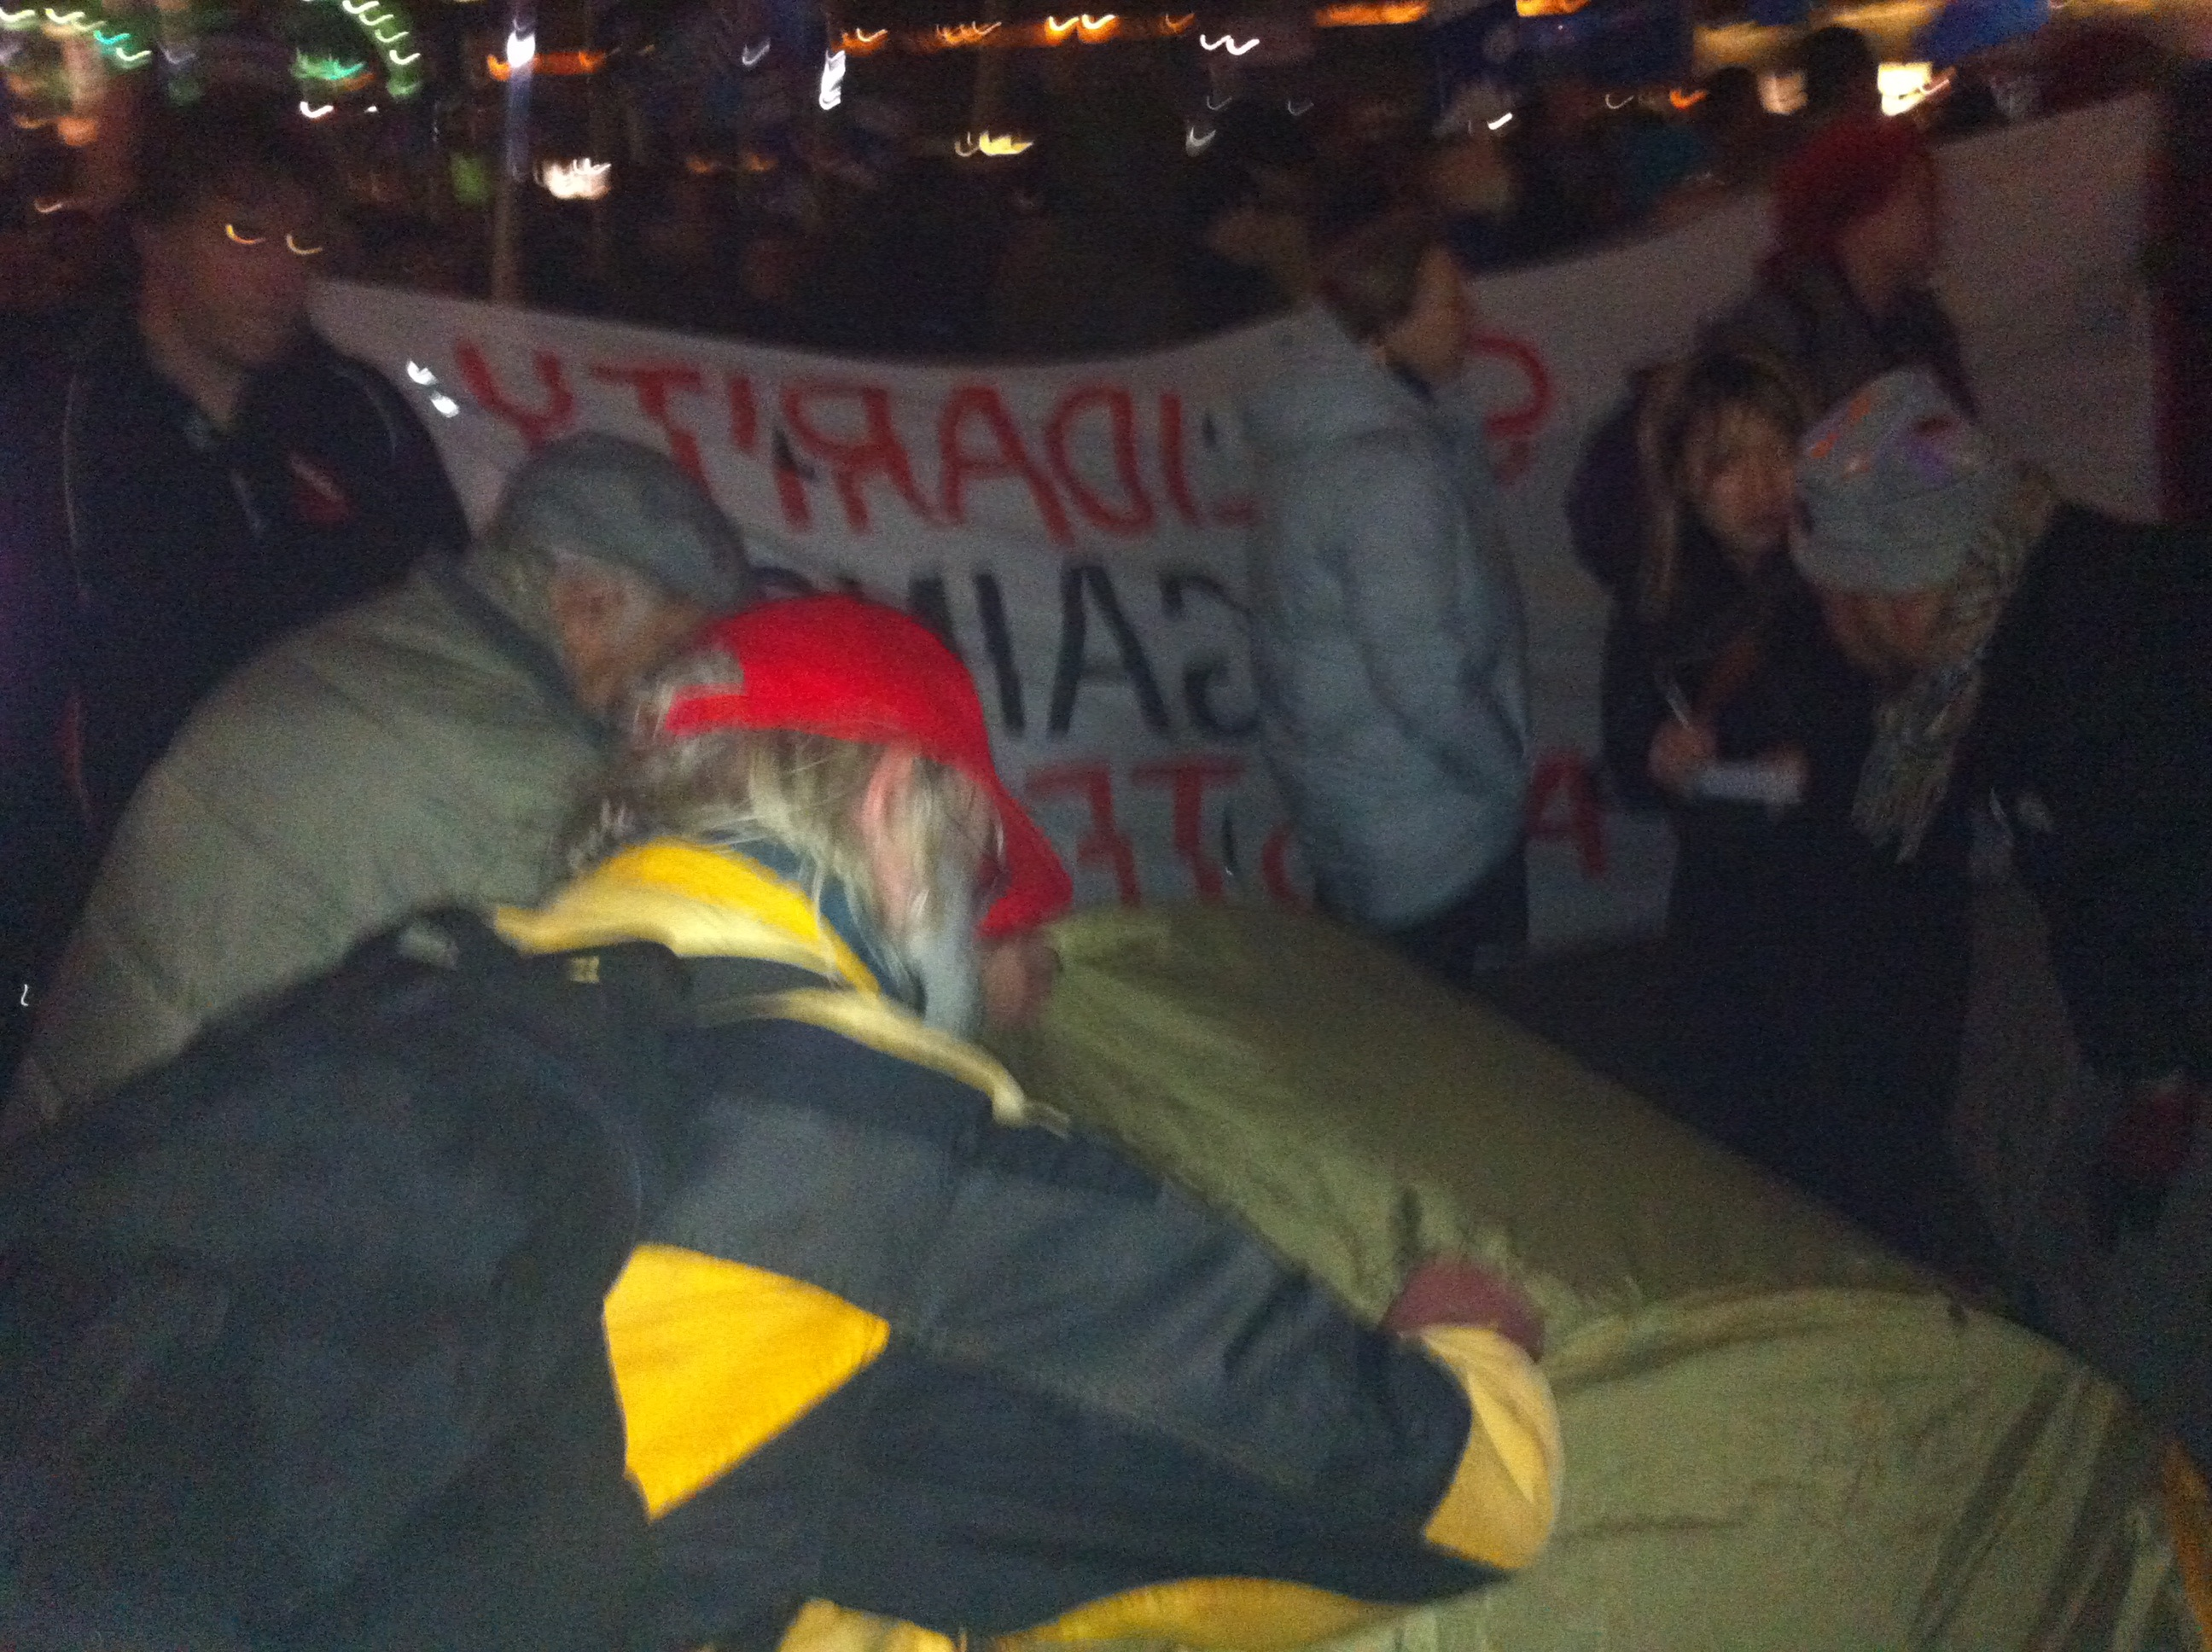 Activists write messages to Ford on Occupy City Hall tents. Photo: Krystalline Kraus